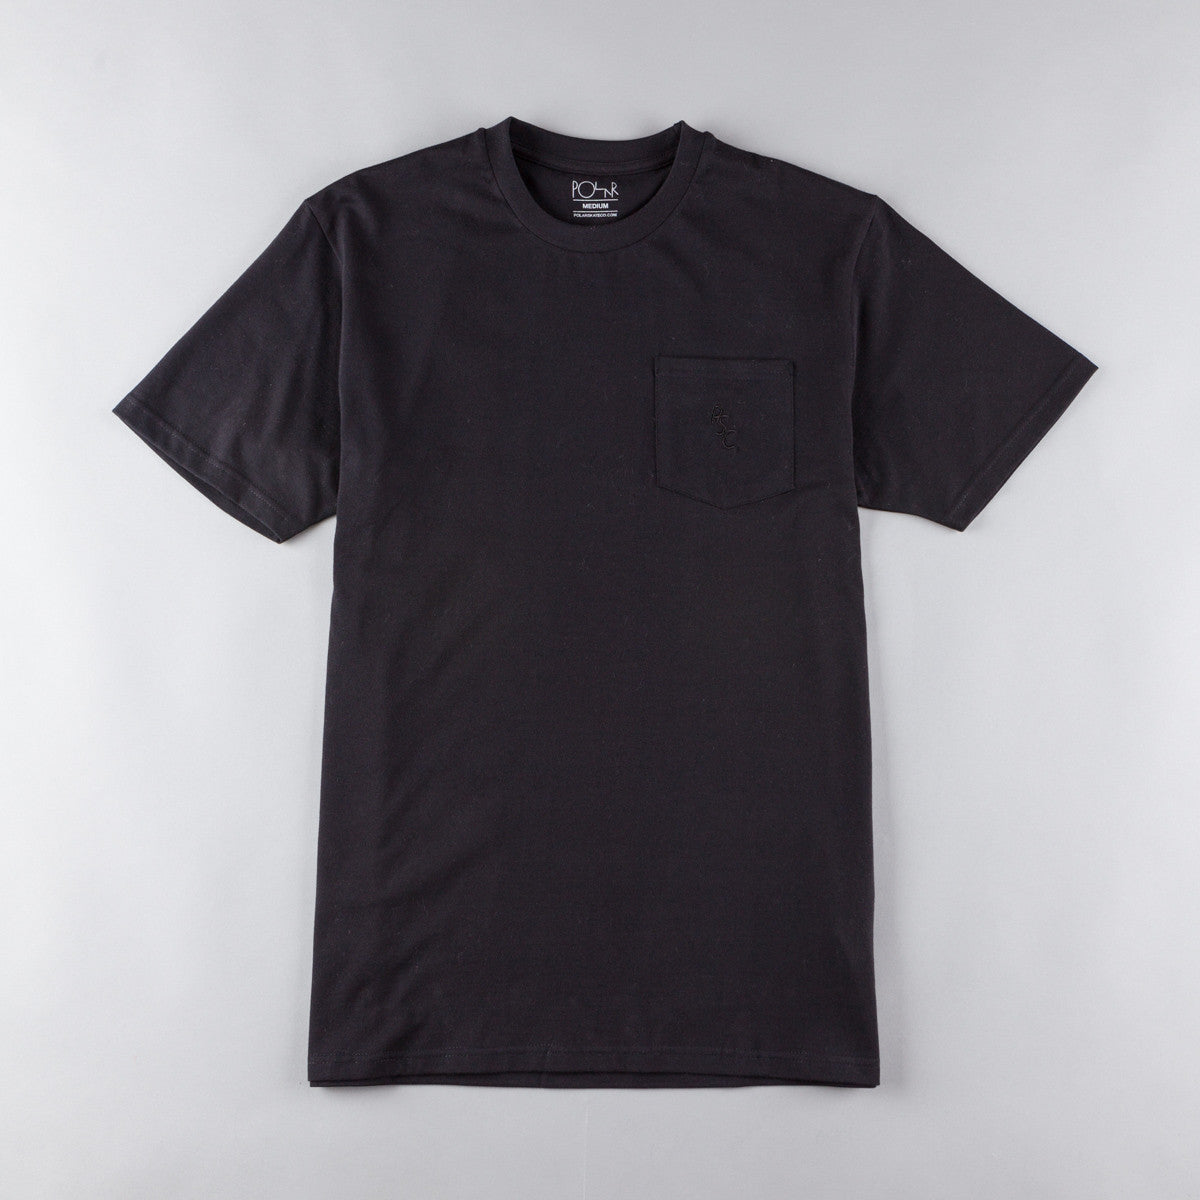 Polar PSC Pocket T-Shirt - Black